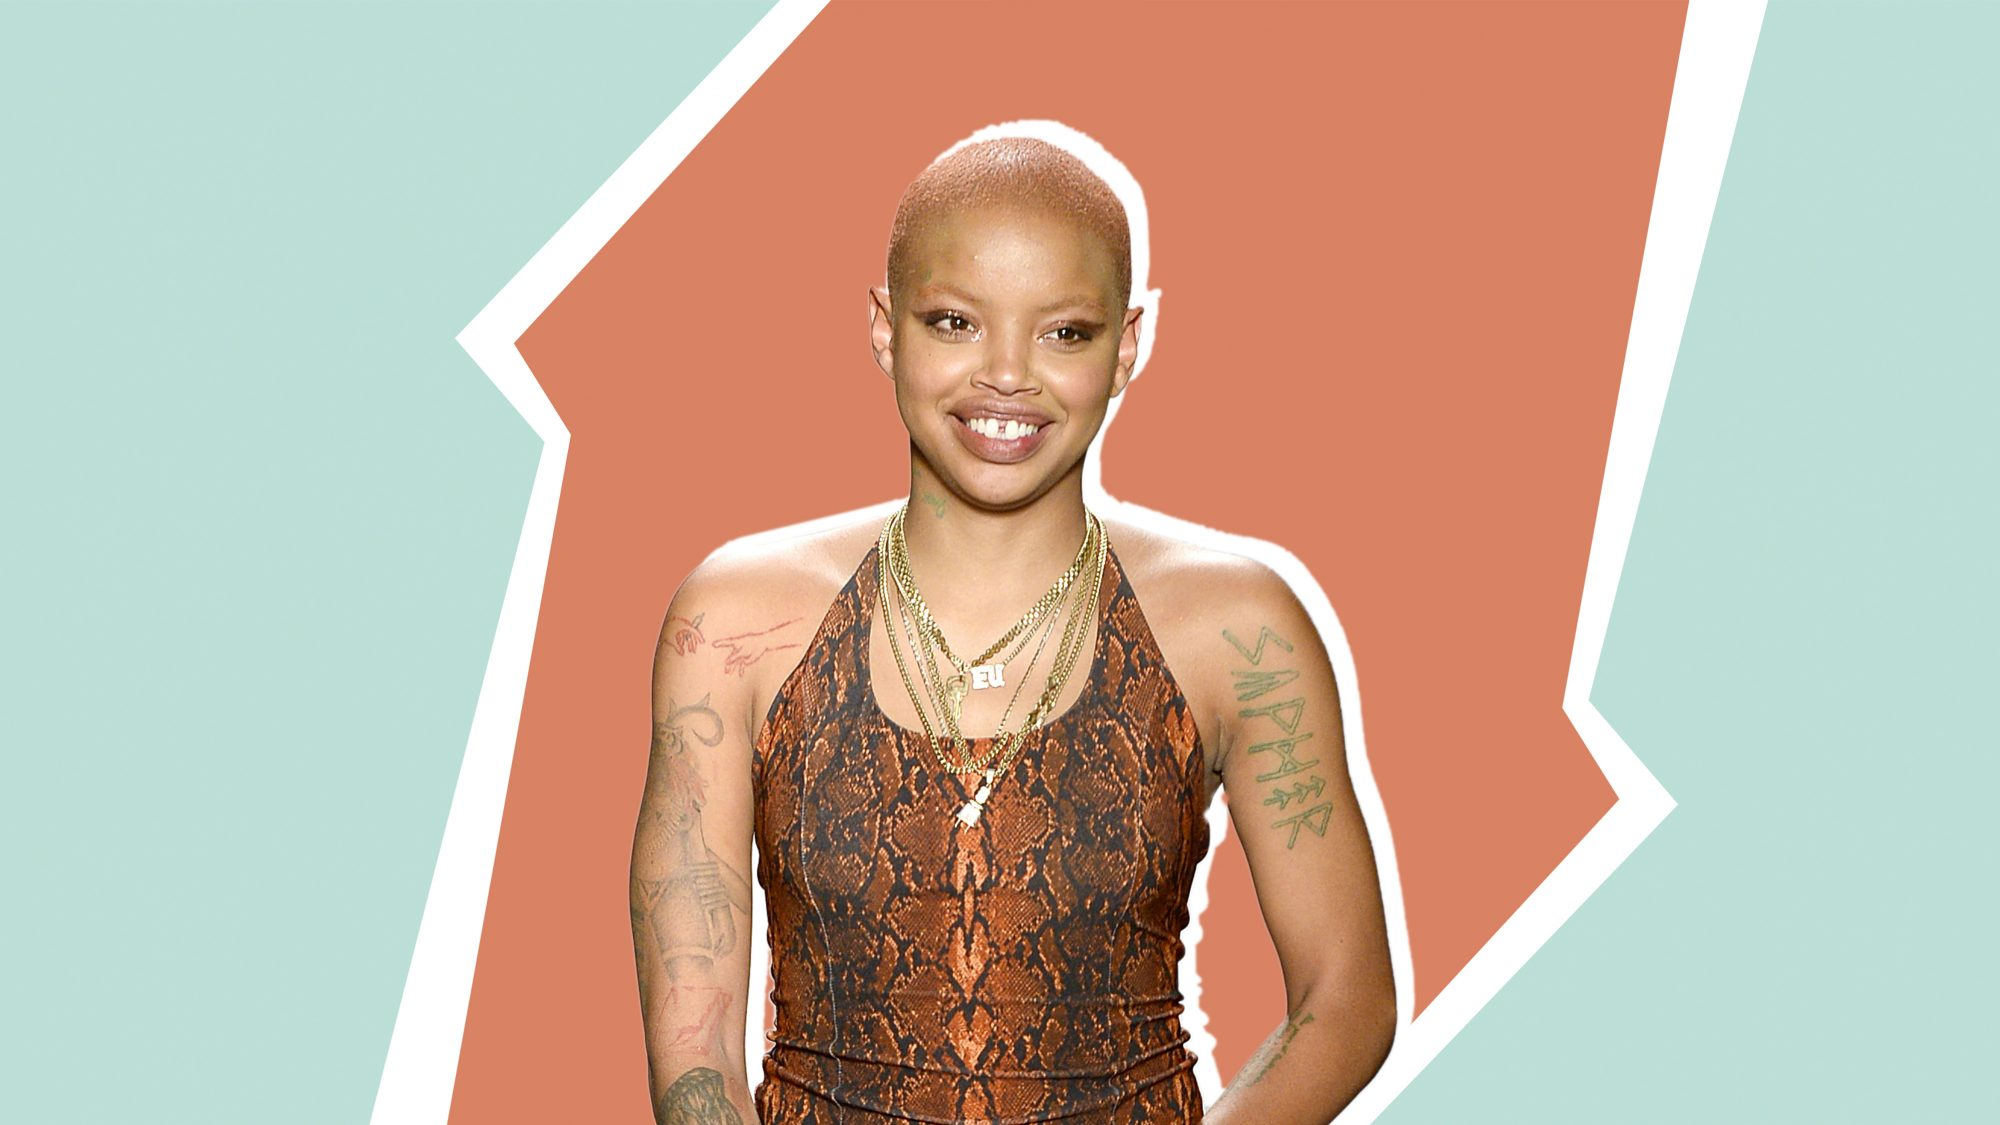 Fenty Model Slick Woods Reveals Stage 3 Melanoma Diagnosis—Here's What That Means